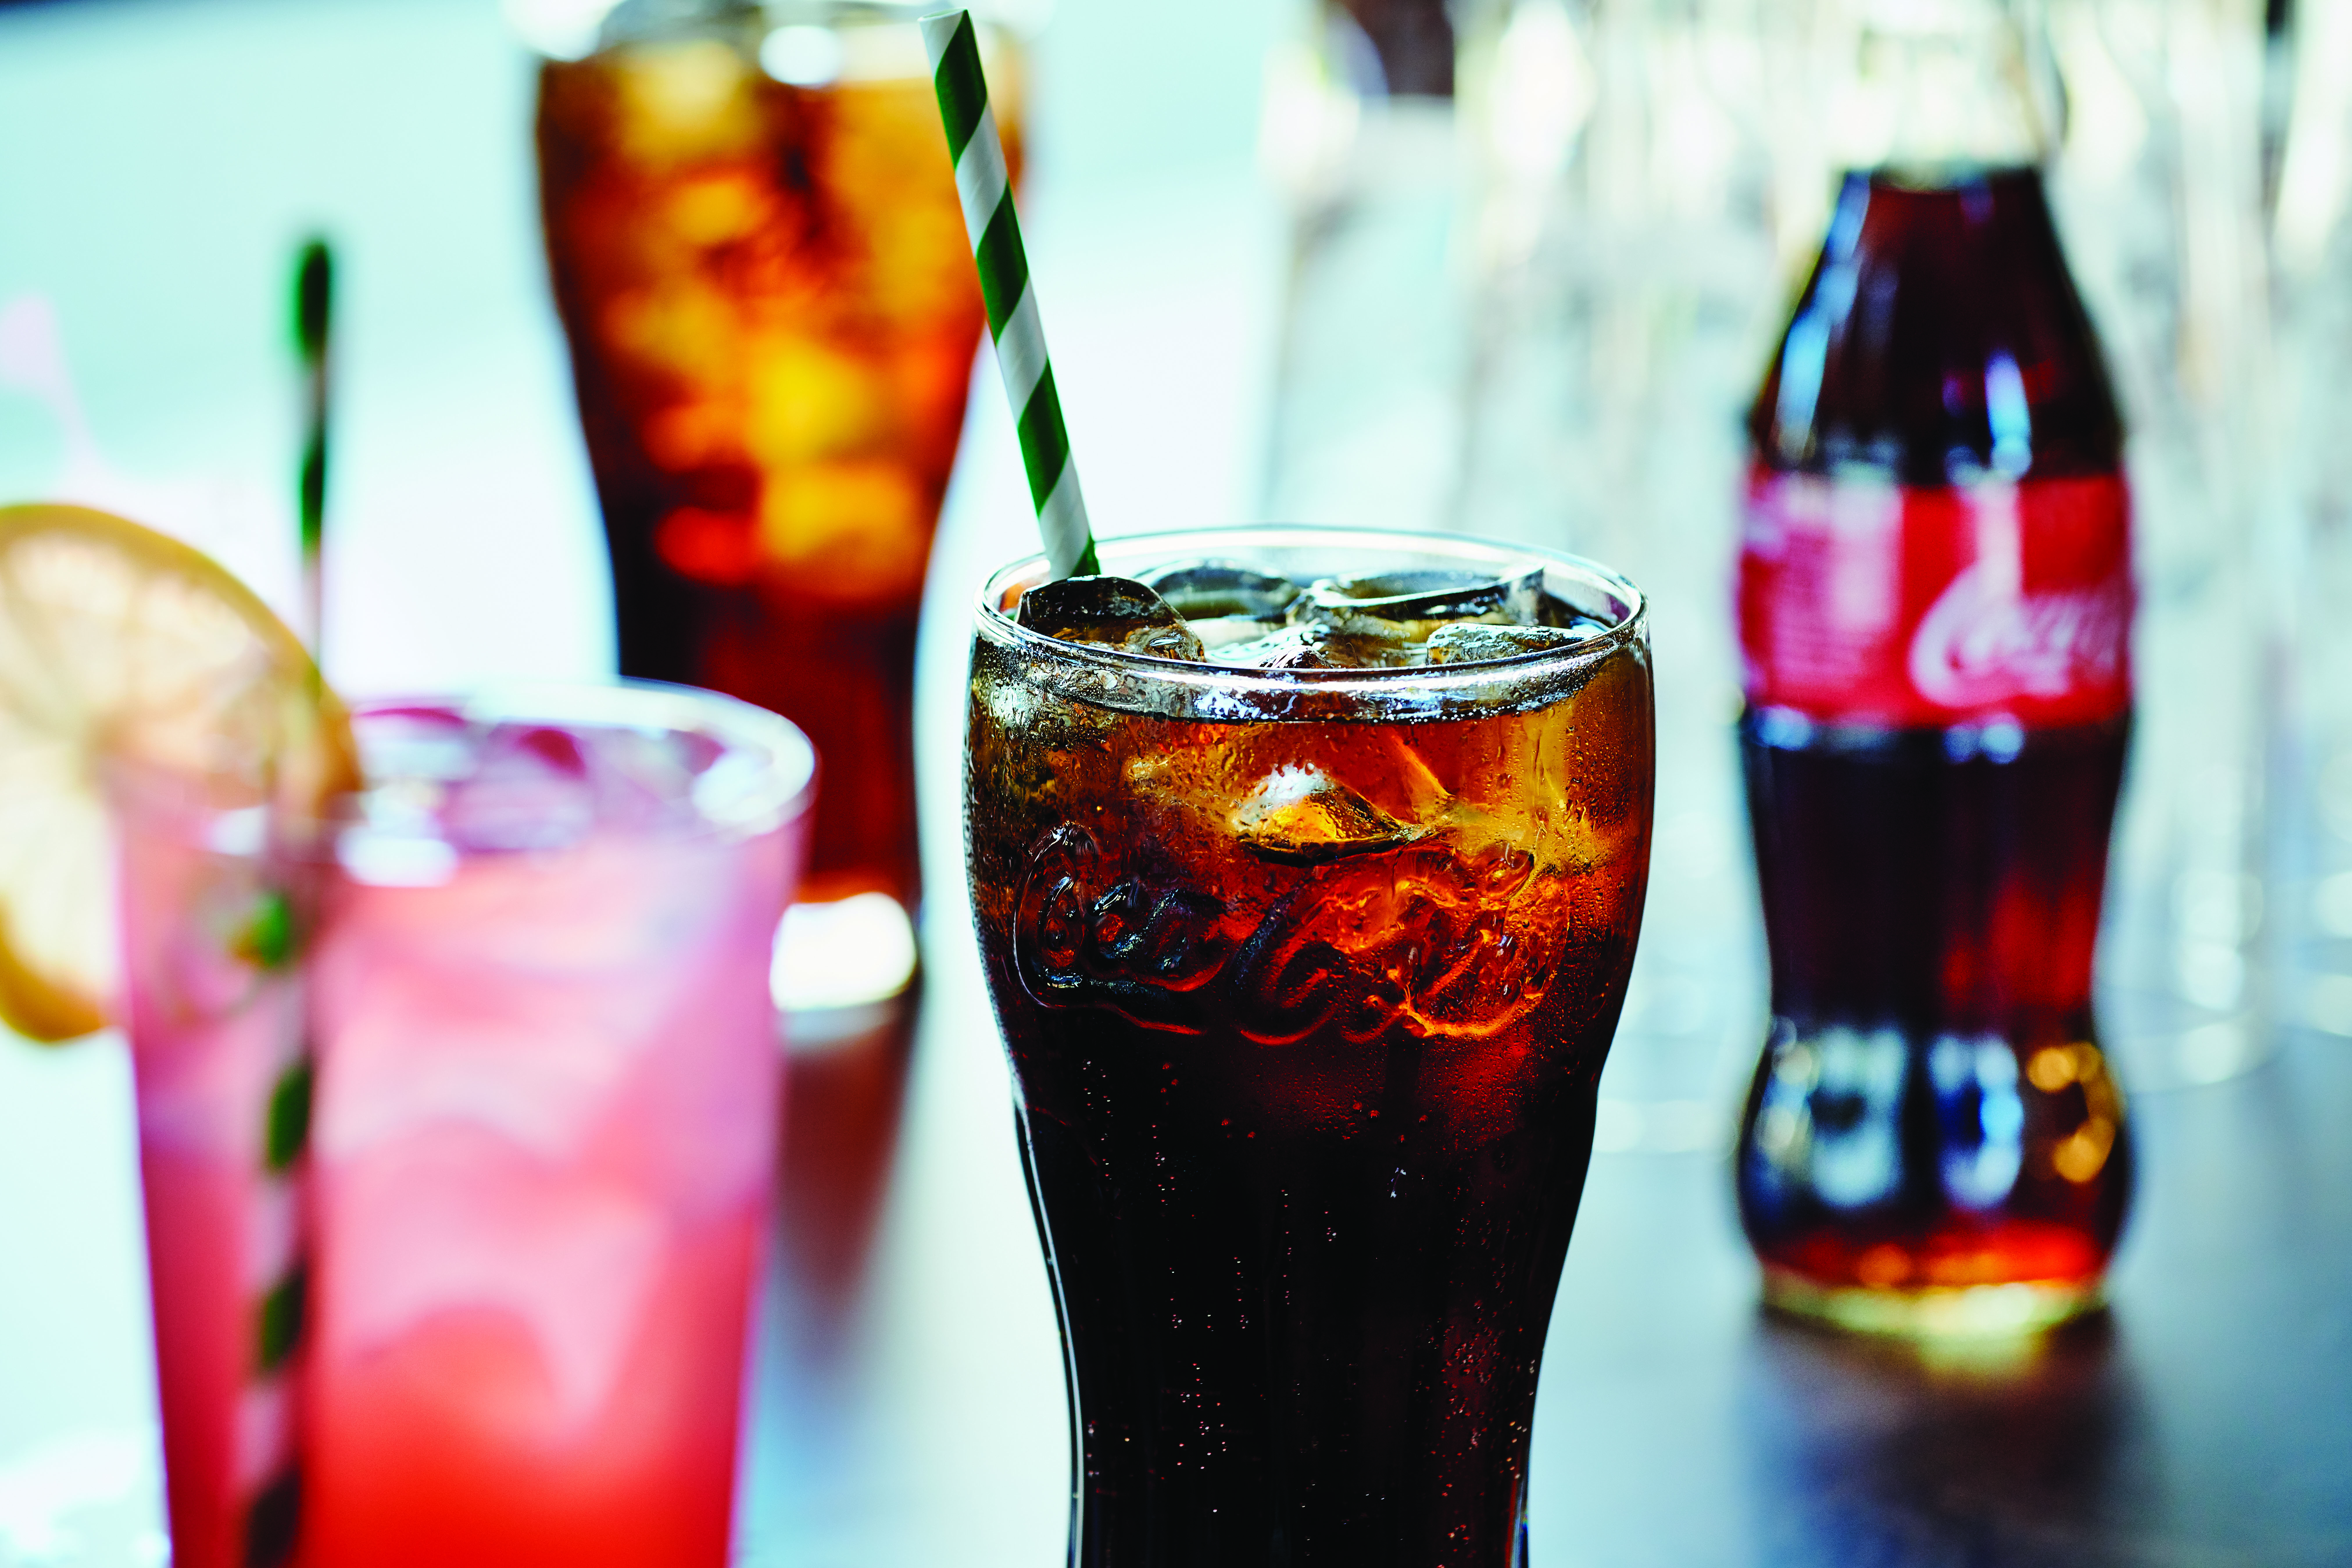 An image of Frankie and Benny's soft drinks.